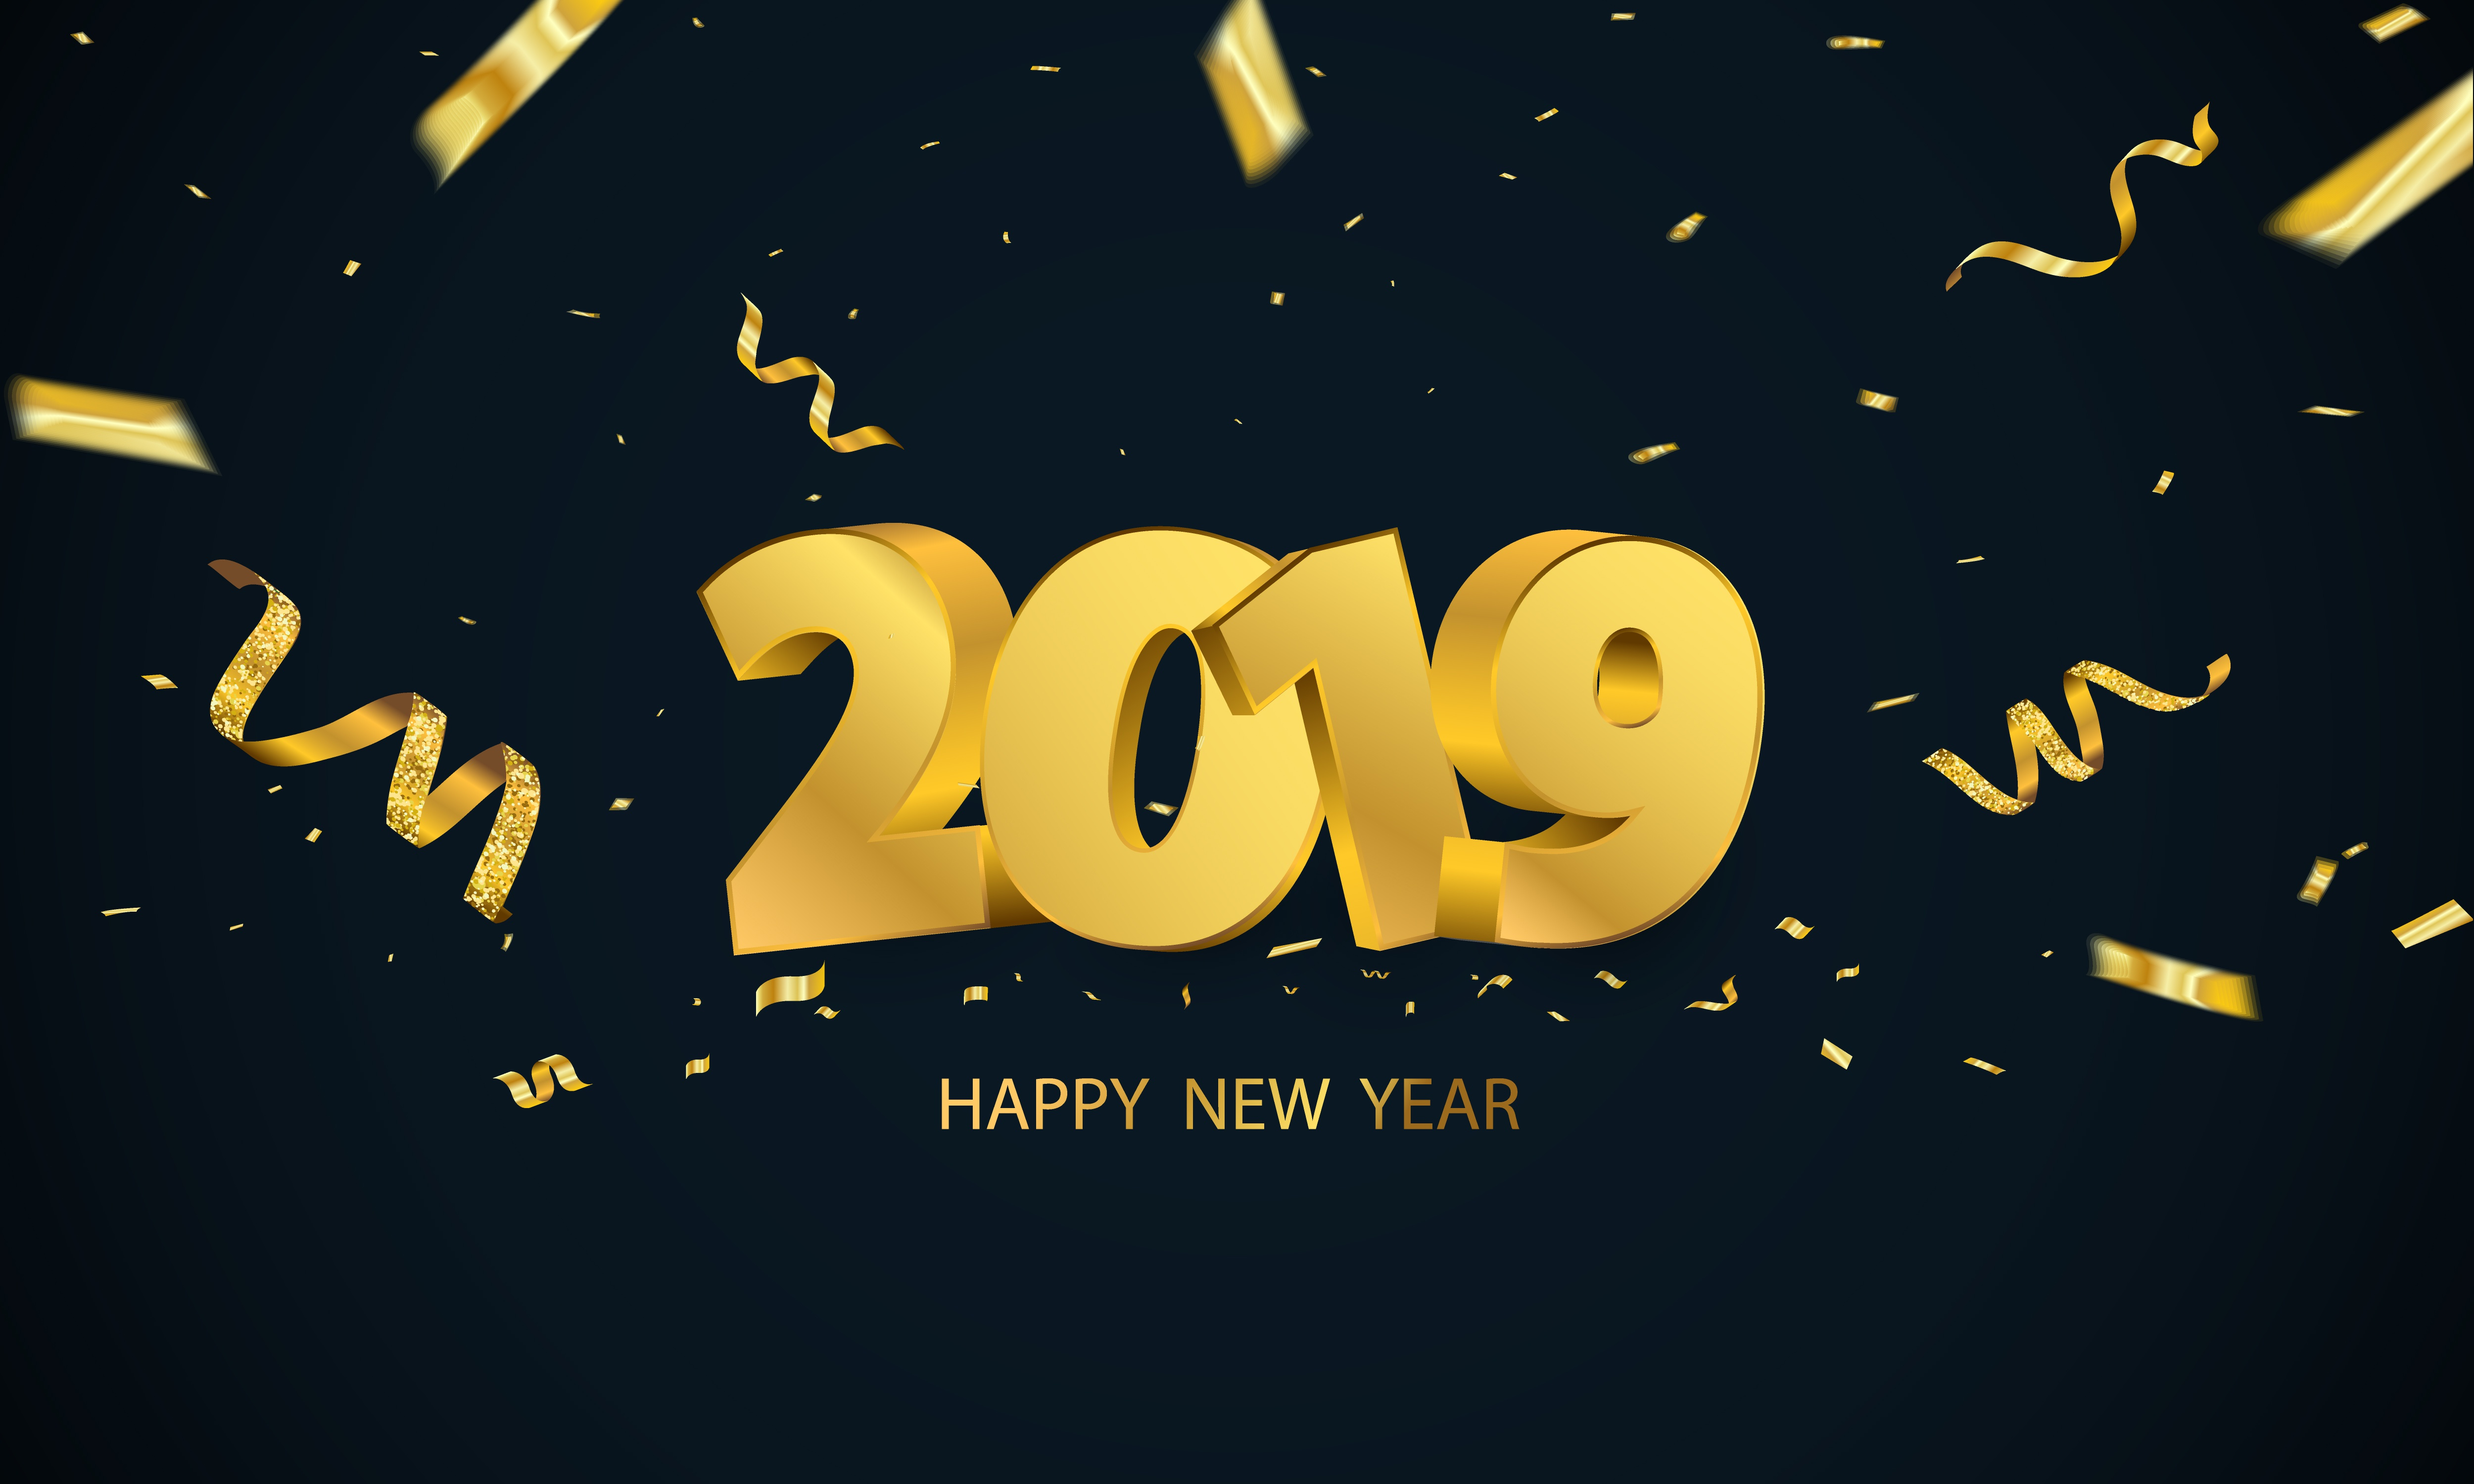 new year 2019 wallpapers id967910